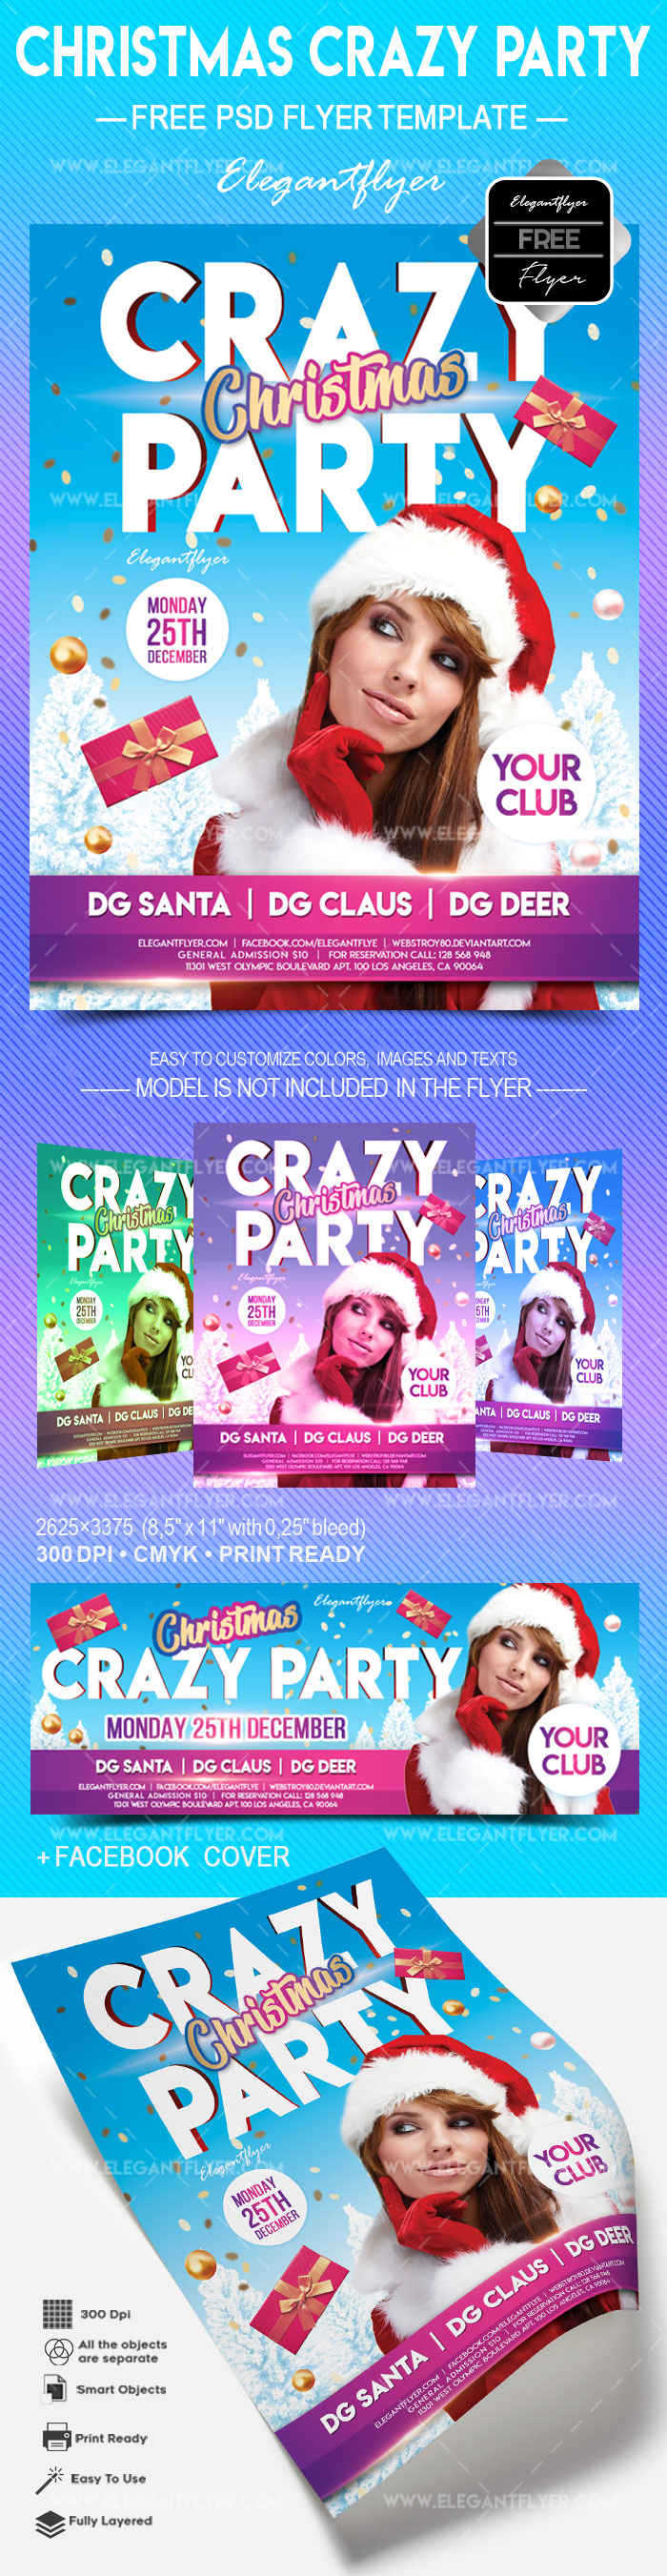 Free Christmas Crazy party – Flyer PSD Template